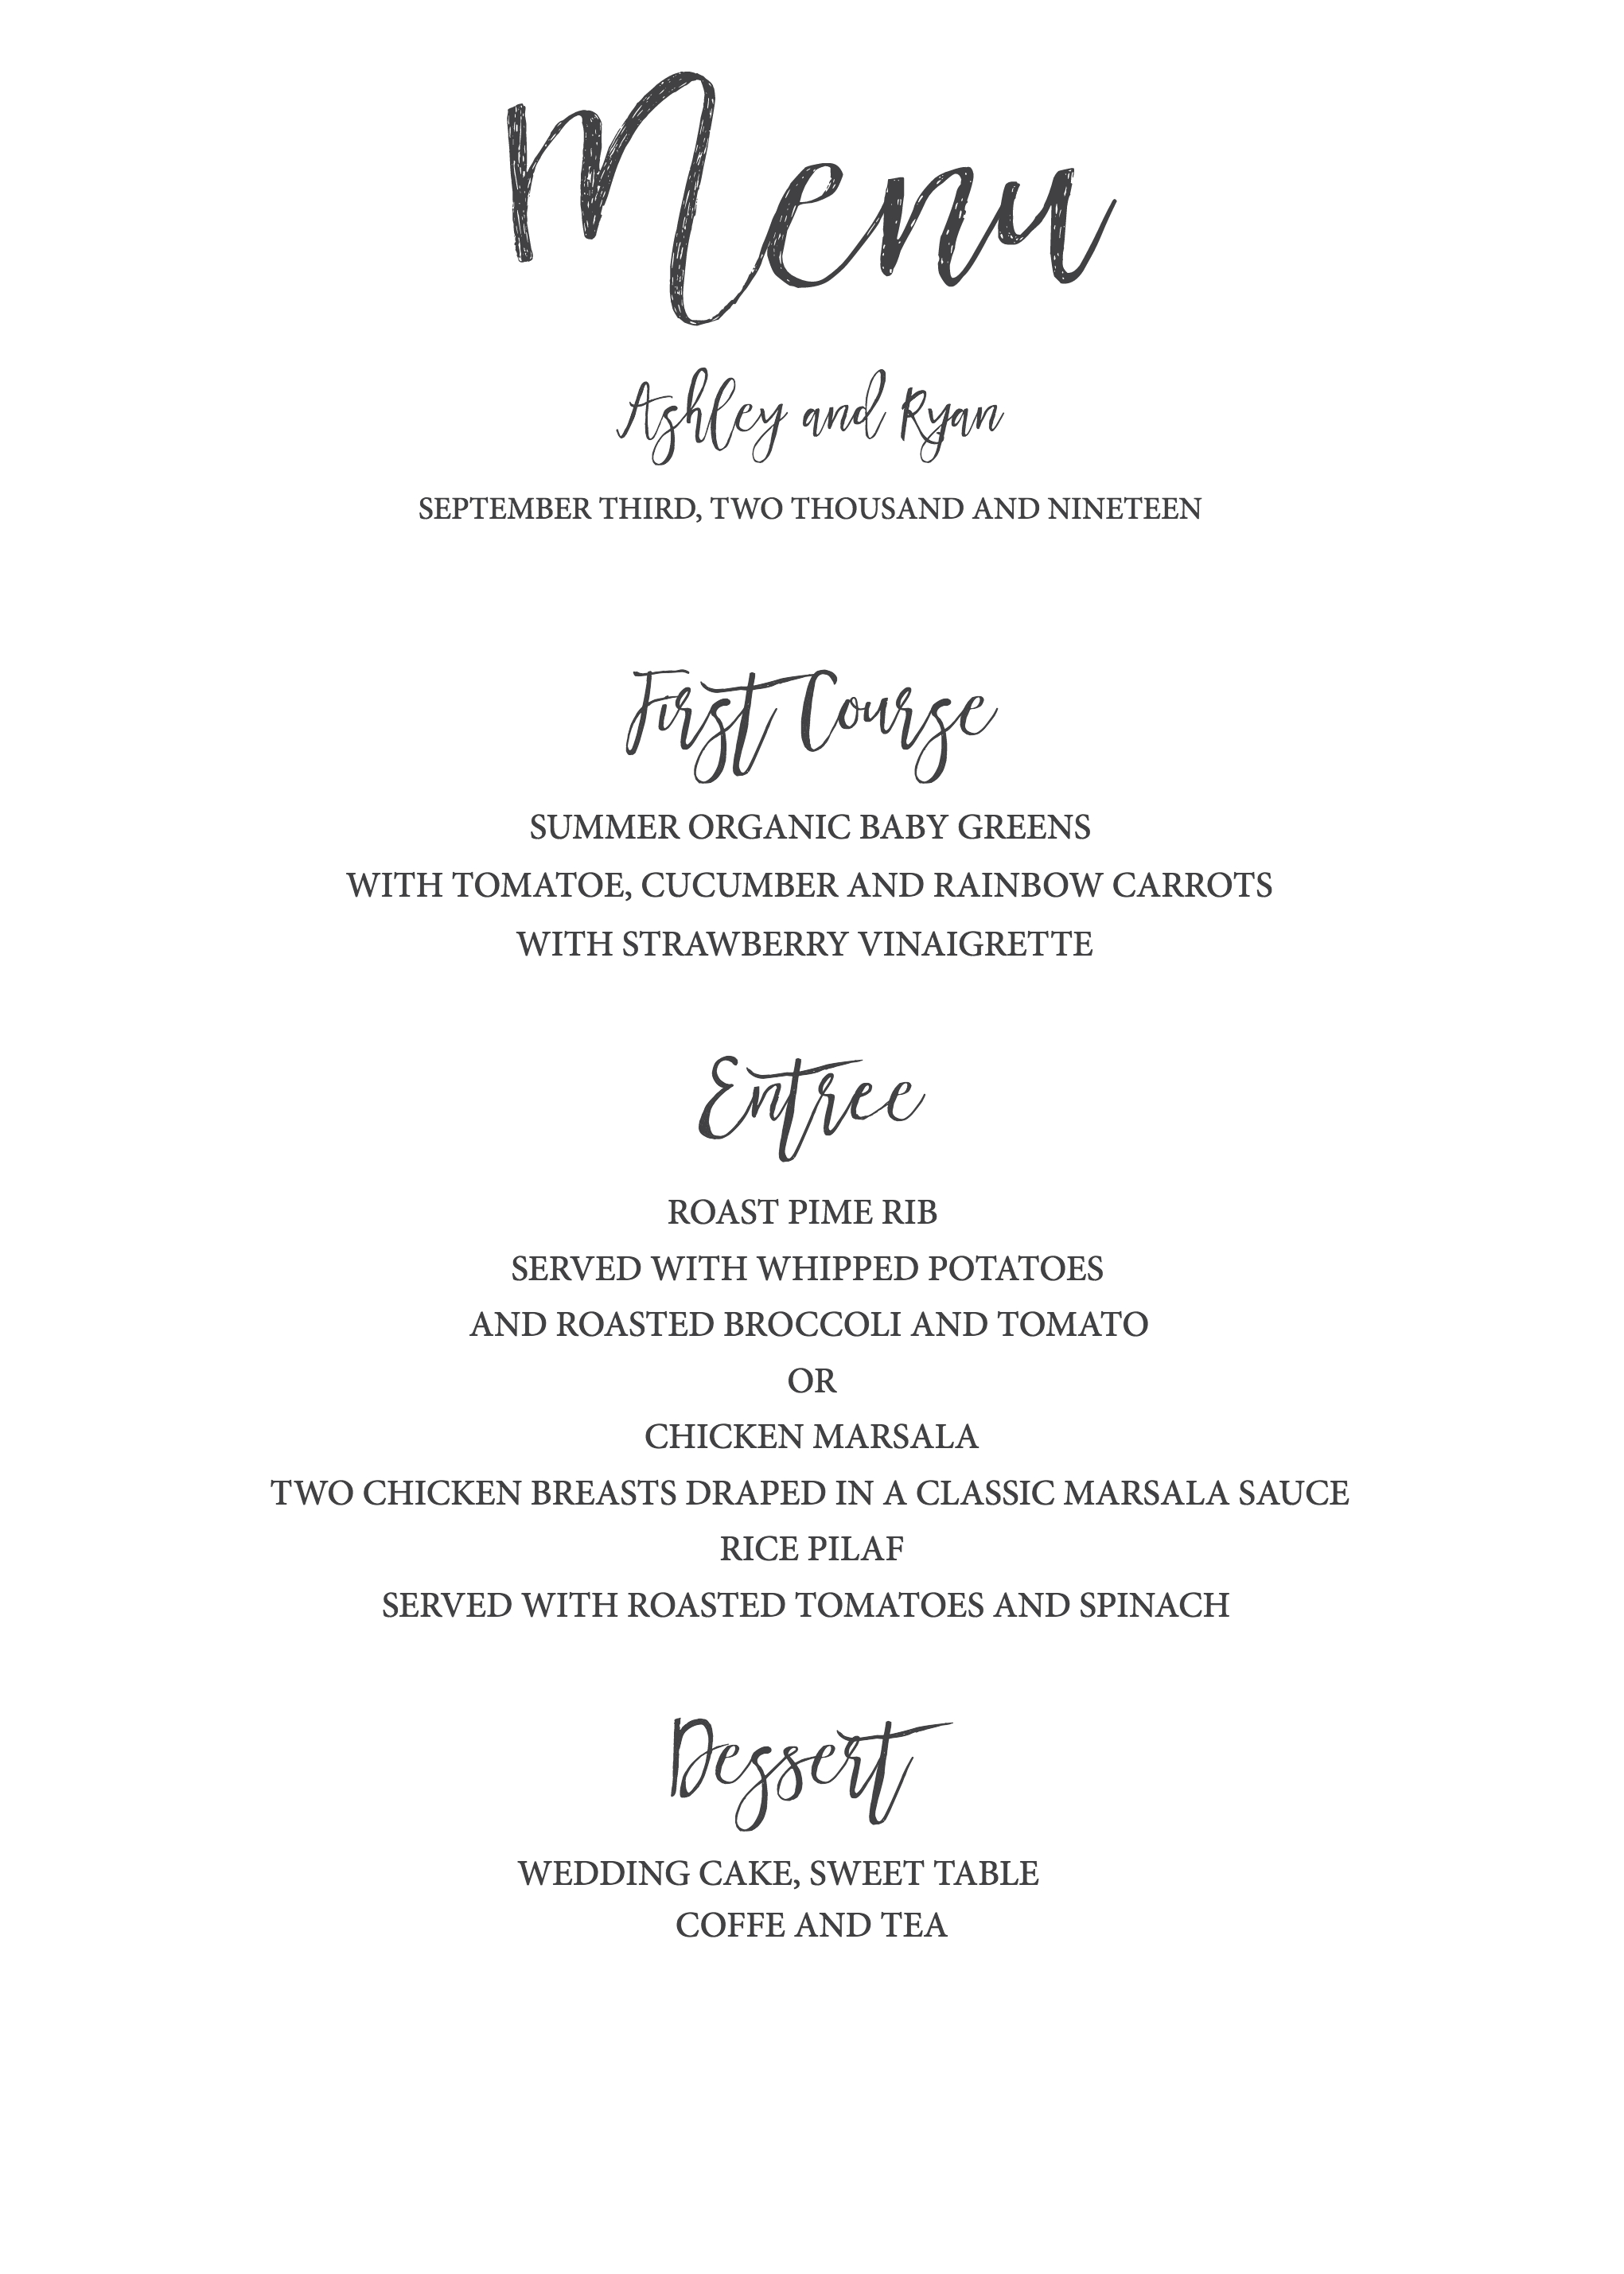 Timeless And Simple Wedding Invitation | Freebies & Free Printables - Free Printable Wedding Menu Card Templates